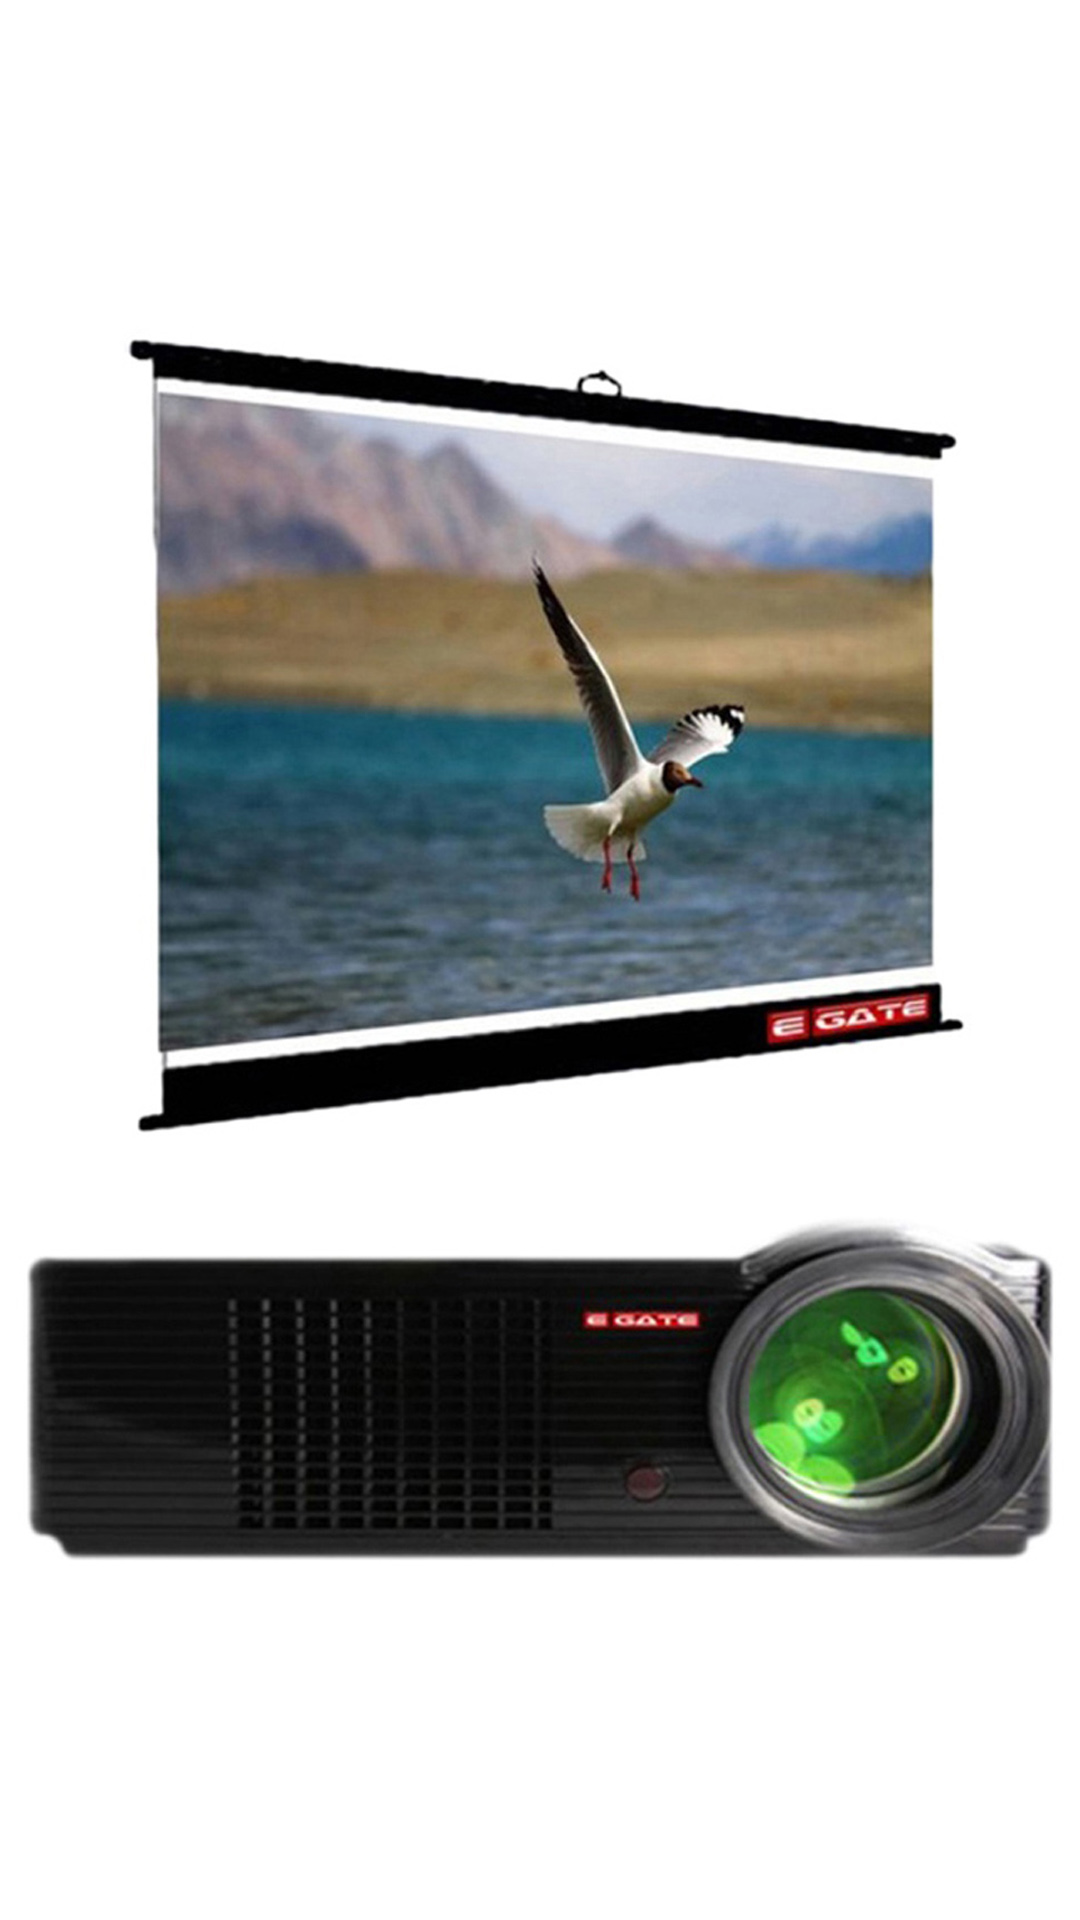 Egate P531 LED Business Android Projector With 6x4 Map Type Projector Screen (Black)